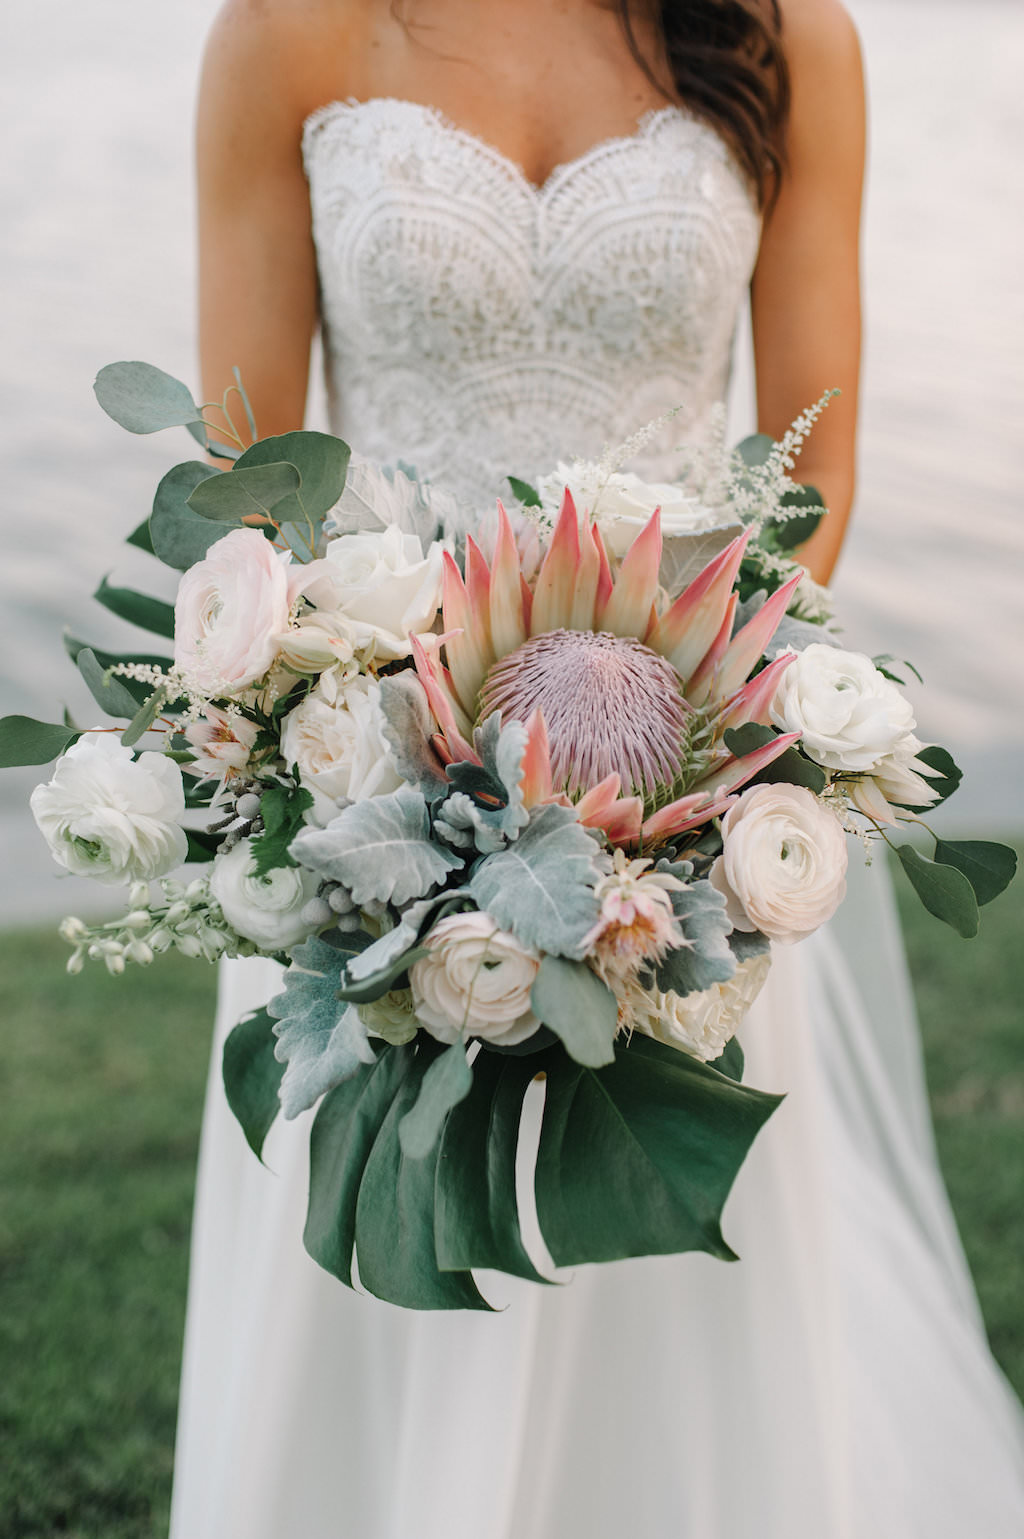 Organic Greenery Inspired Large Neutral Pastel Wedding Bouquet for Outdoor Waterfront Wedding